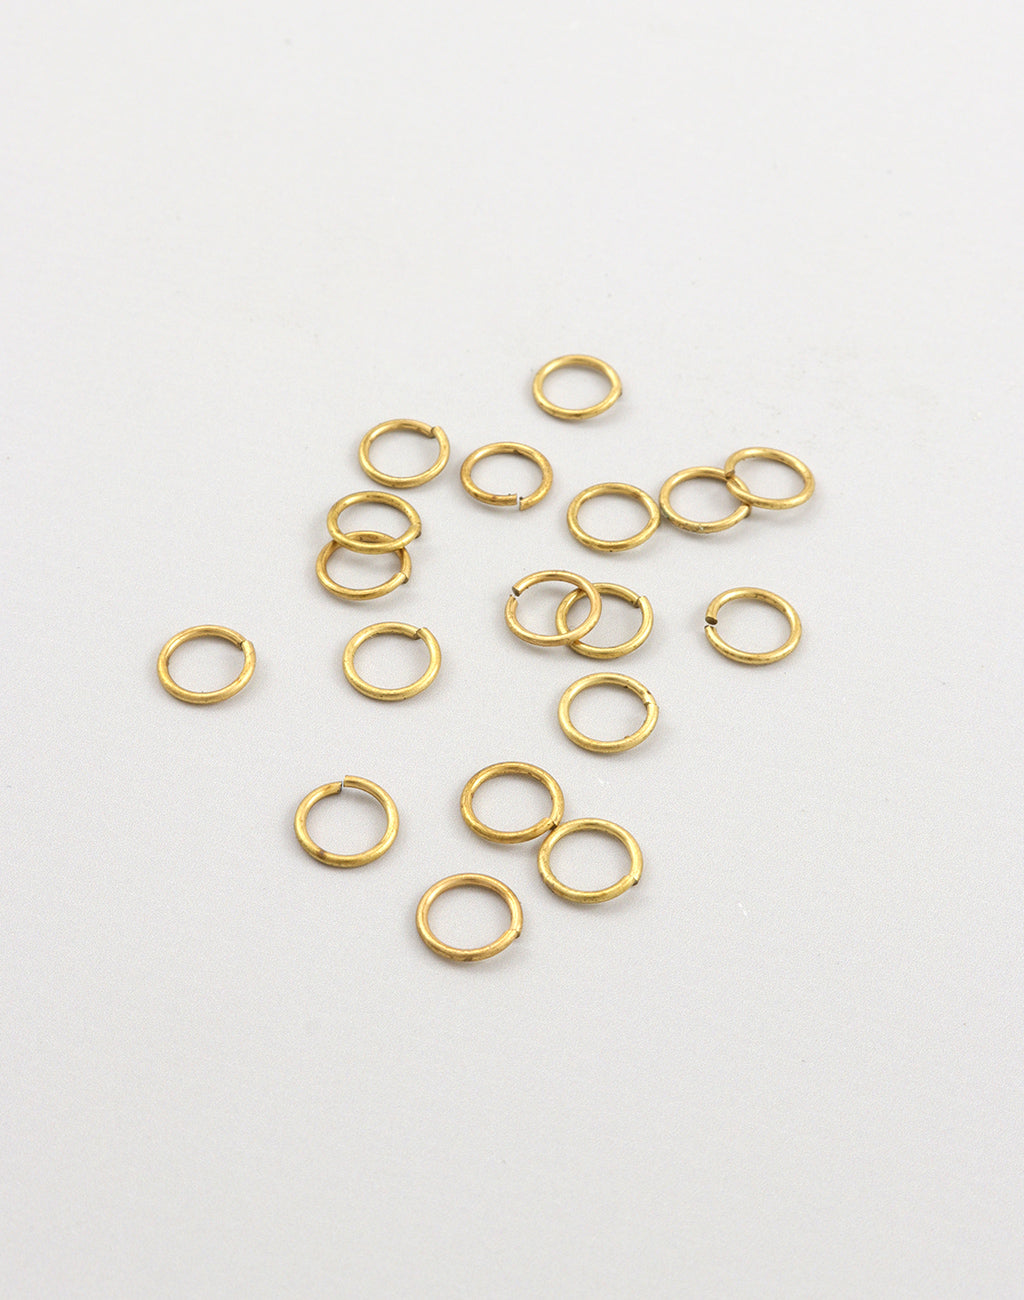 Smooth Jump Ring, 6mm, 21ga, (18pcs)